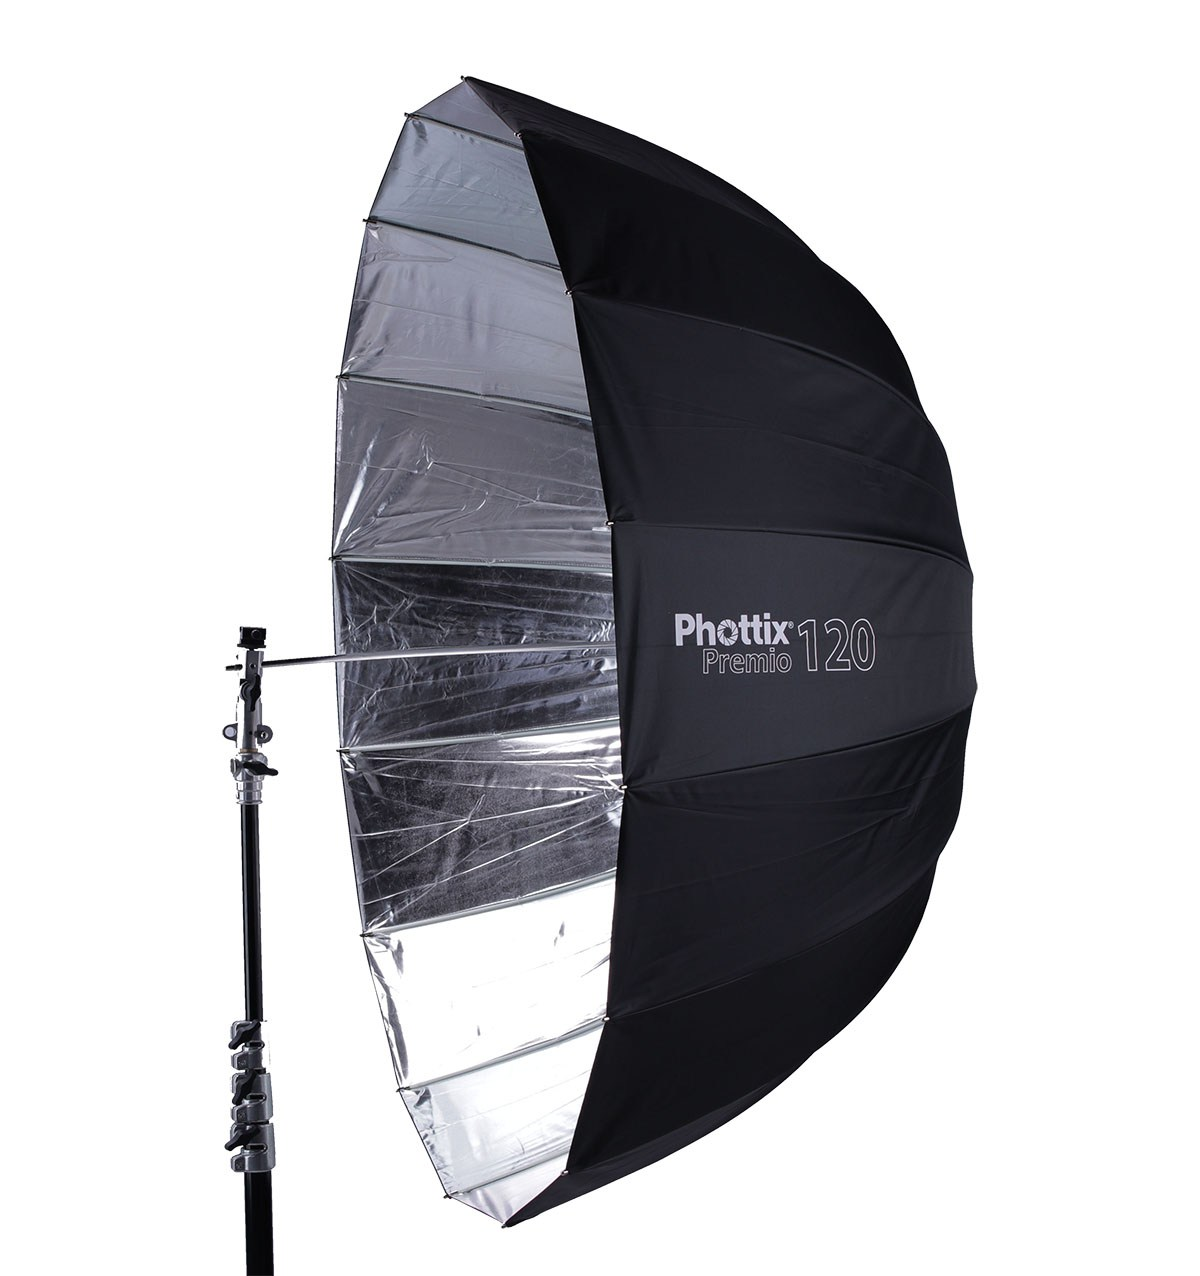 Phottix Premio 120CM Parabolic Umbrella - If this were Lord of the Rings, this would be the Parabolic umbrella to rule them all.  High quality construction, smooth mechanisms for easy setup and the light fall off is perfect.  Incredible piece of kit!